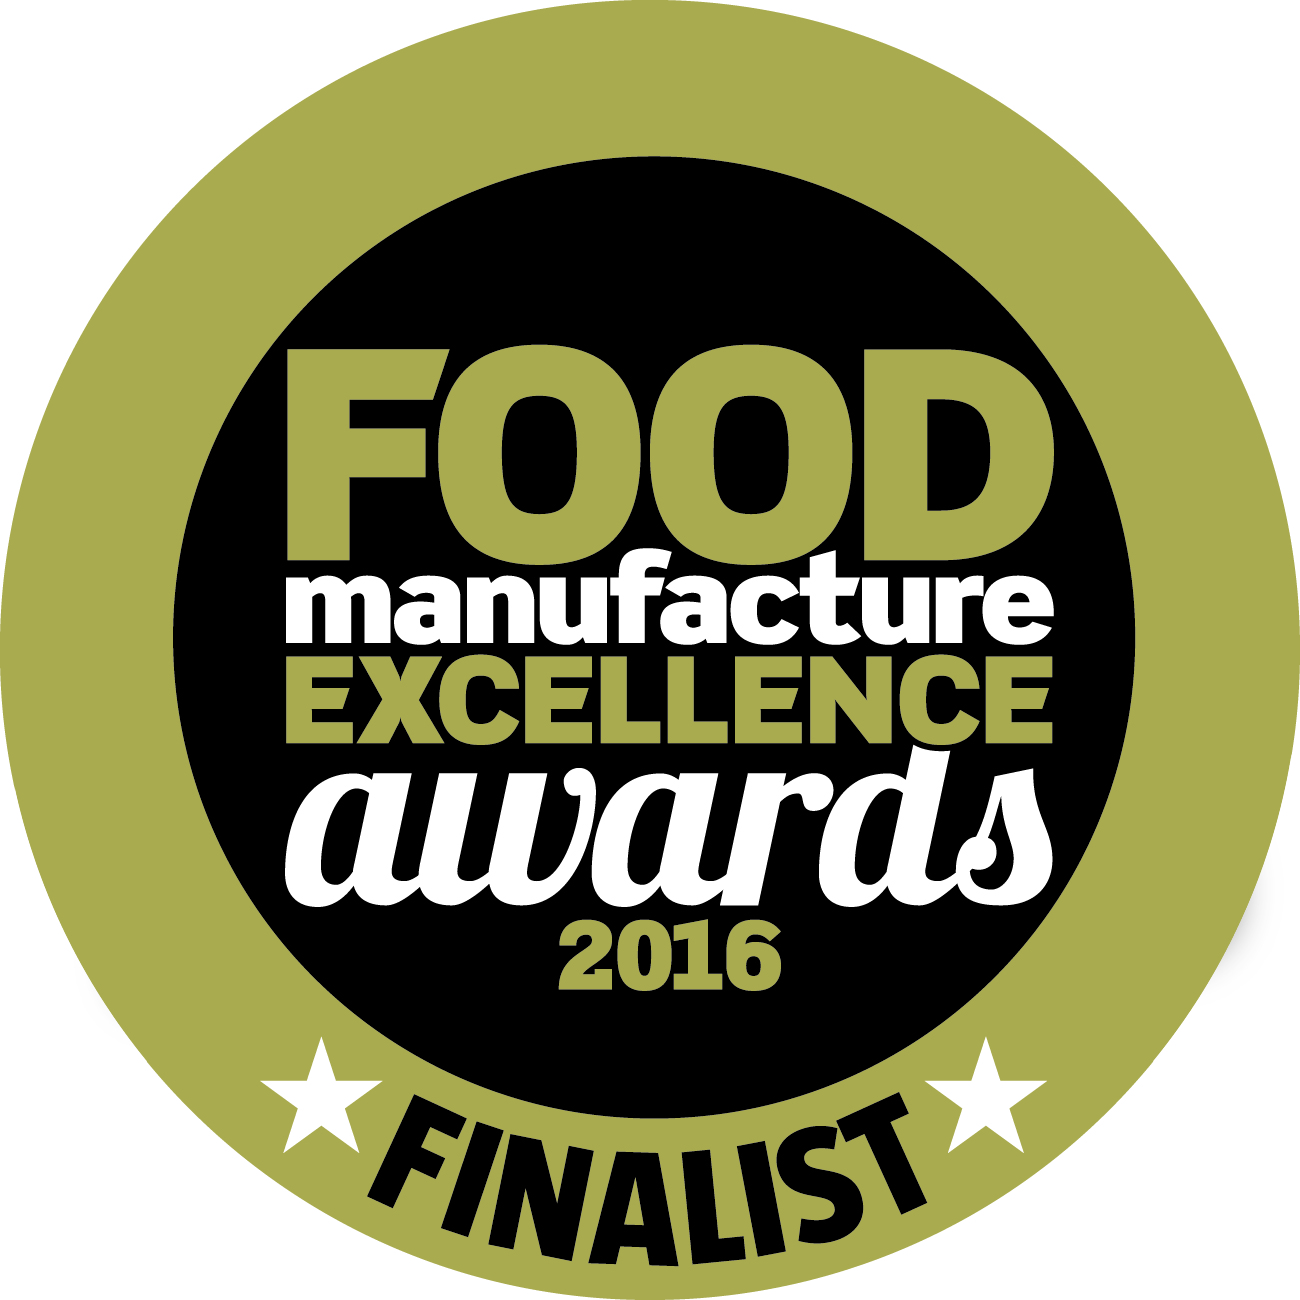 2016 Judges Star Performers Finalist | 2016 SME Innovation of the Year Finalist | 2016 Training Program of the Year Finalist | 2016 Bakery Manufacturing Company of the Year Finalist